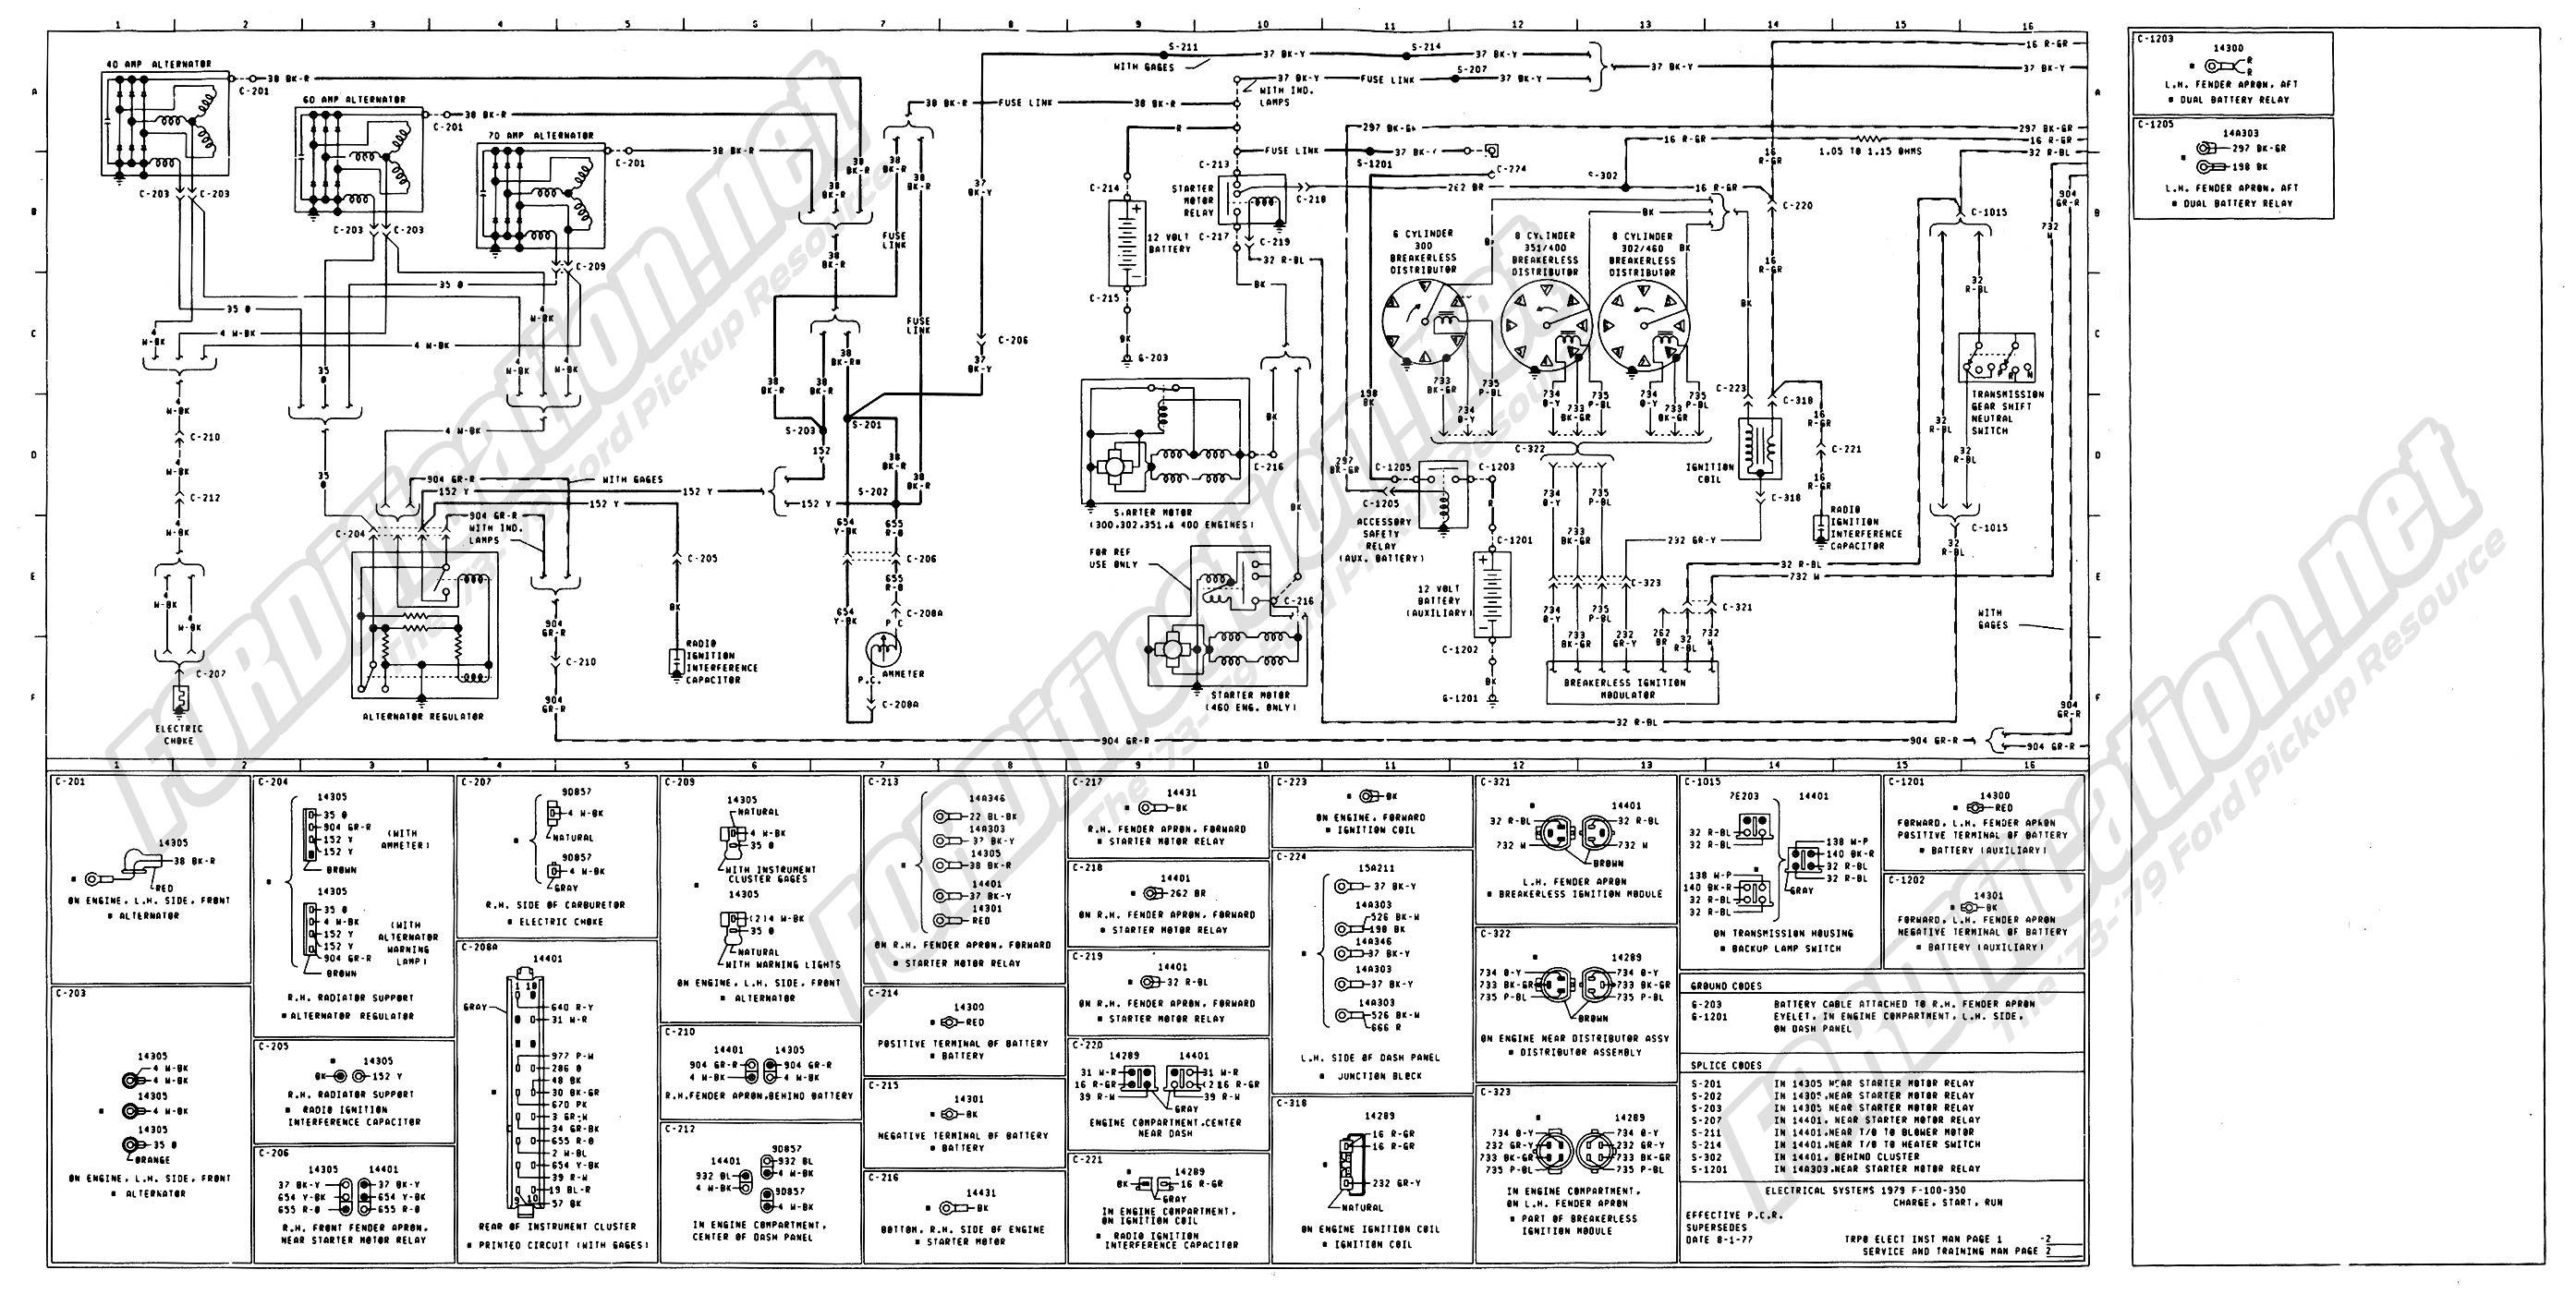 1973 1979 ford truck wiring diagrams & schematics fordification net 1976 Ford Alternator Wiring Diagram 1975 Ford Truck Wiring Diagrams #2